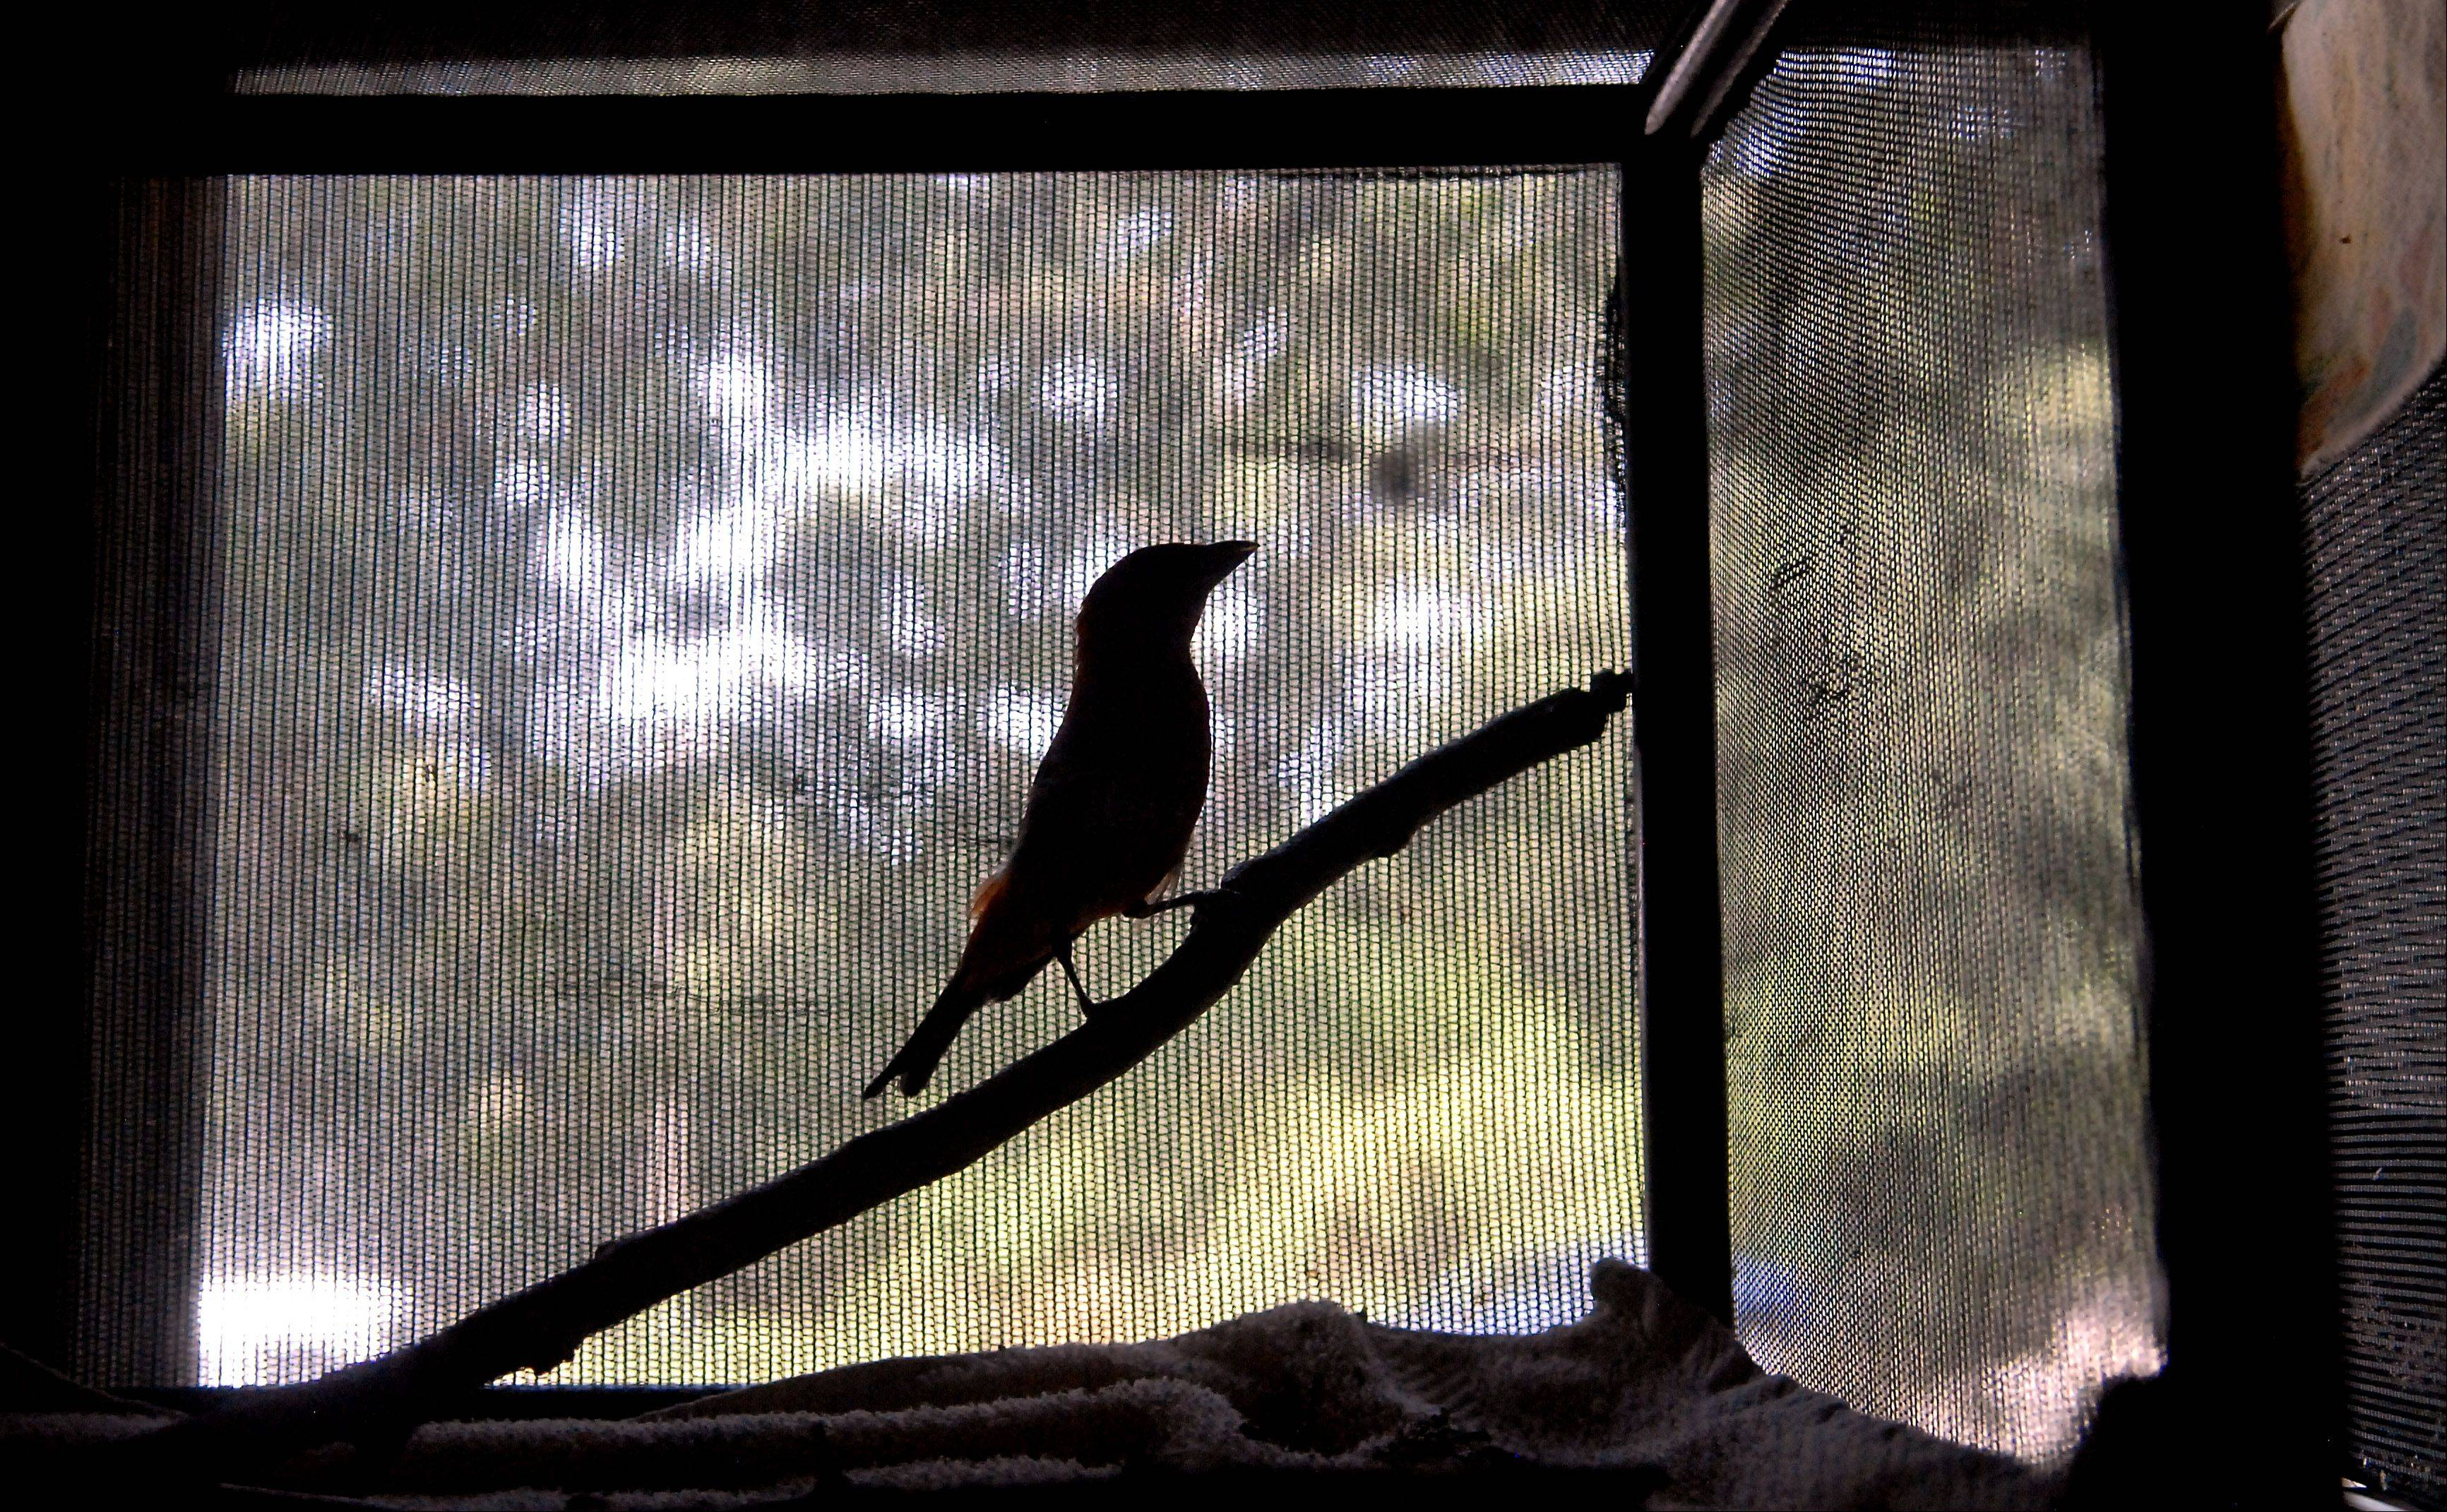 A scarlet tanager hops around its cage at the Fox Valley Wildlife Center located inside the Elburn Forest Preserve.